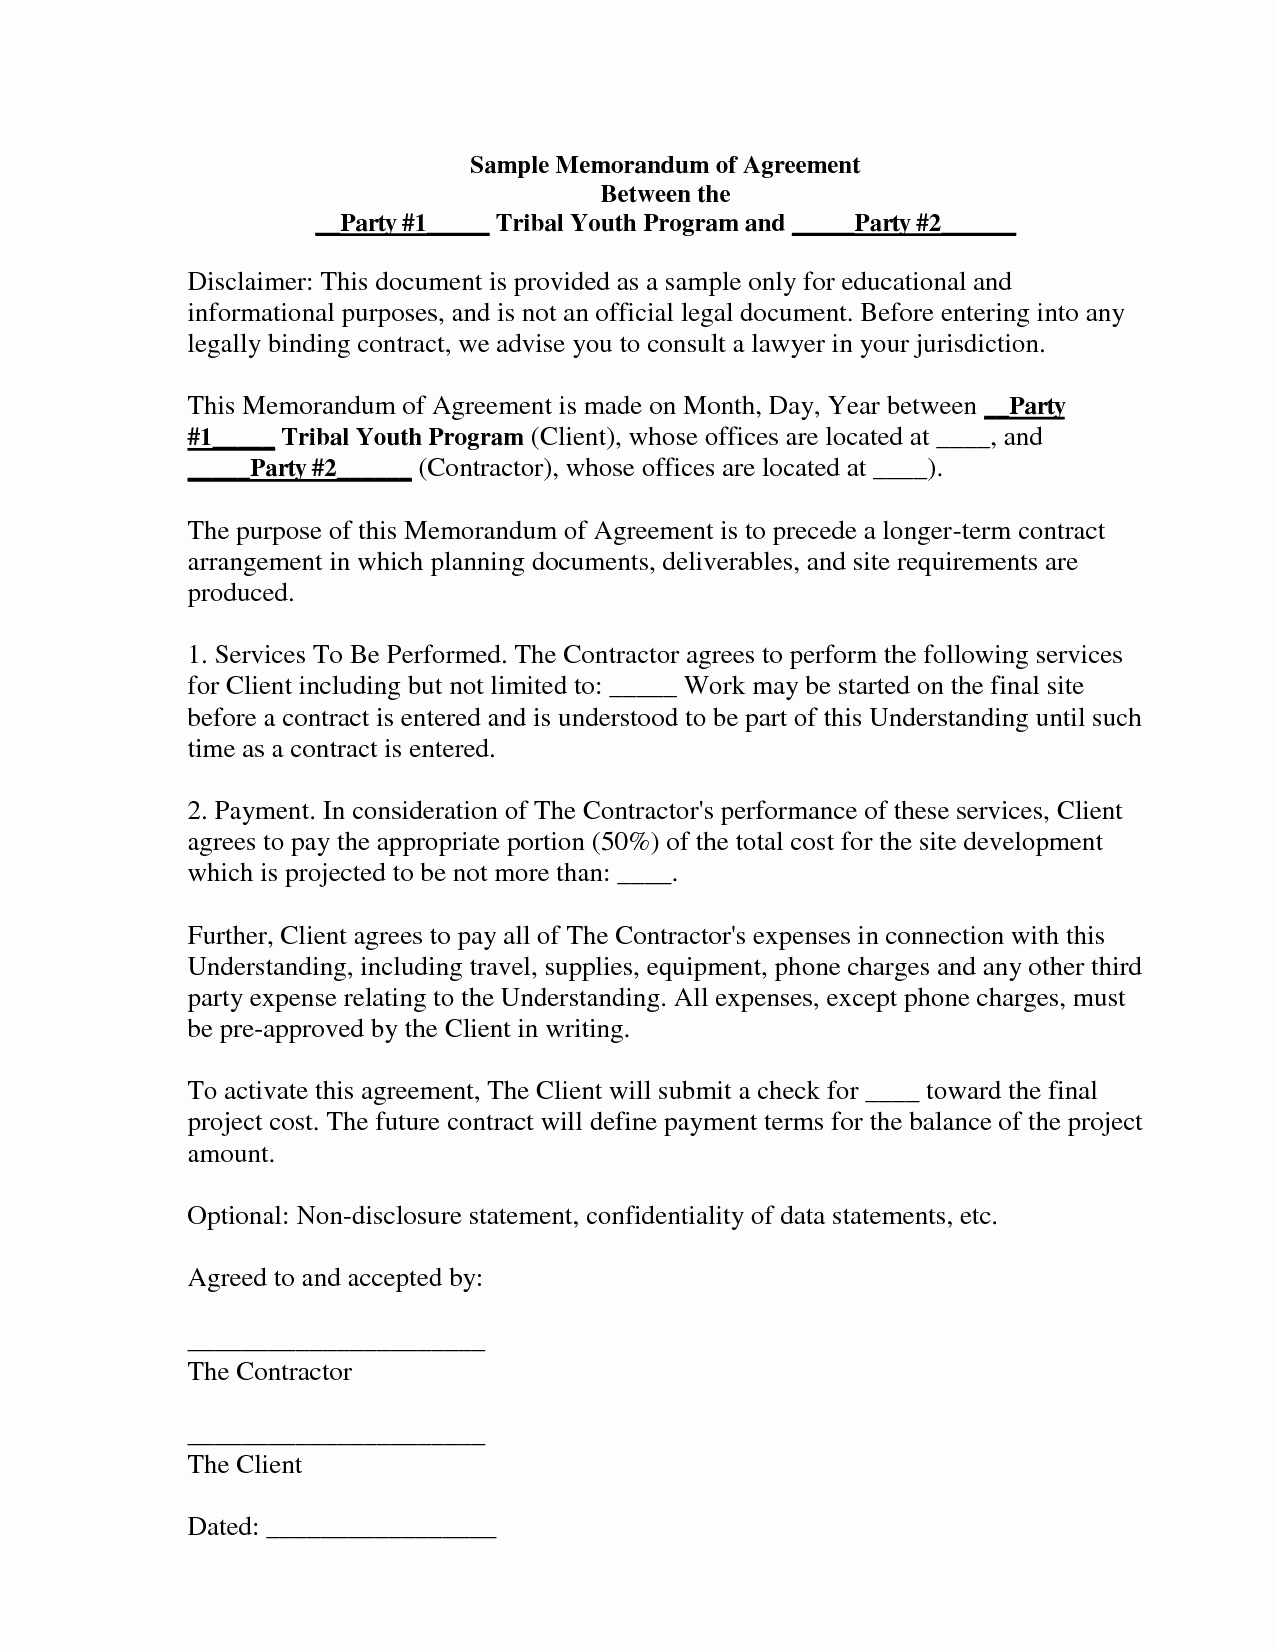 Memorandum Of Understanding Sample Elegant Best S Of Memorandum Agreement Sample Sample